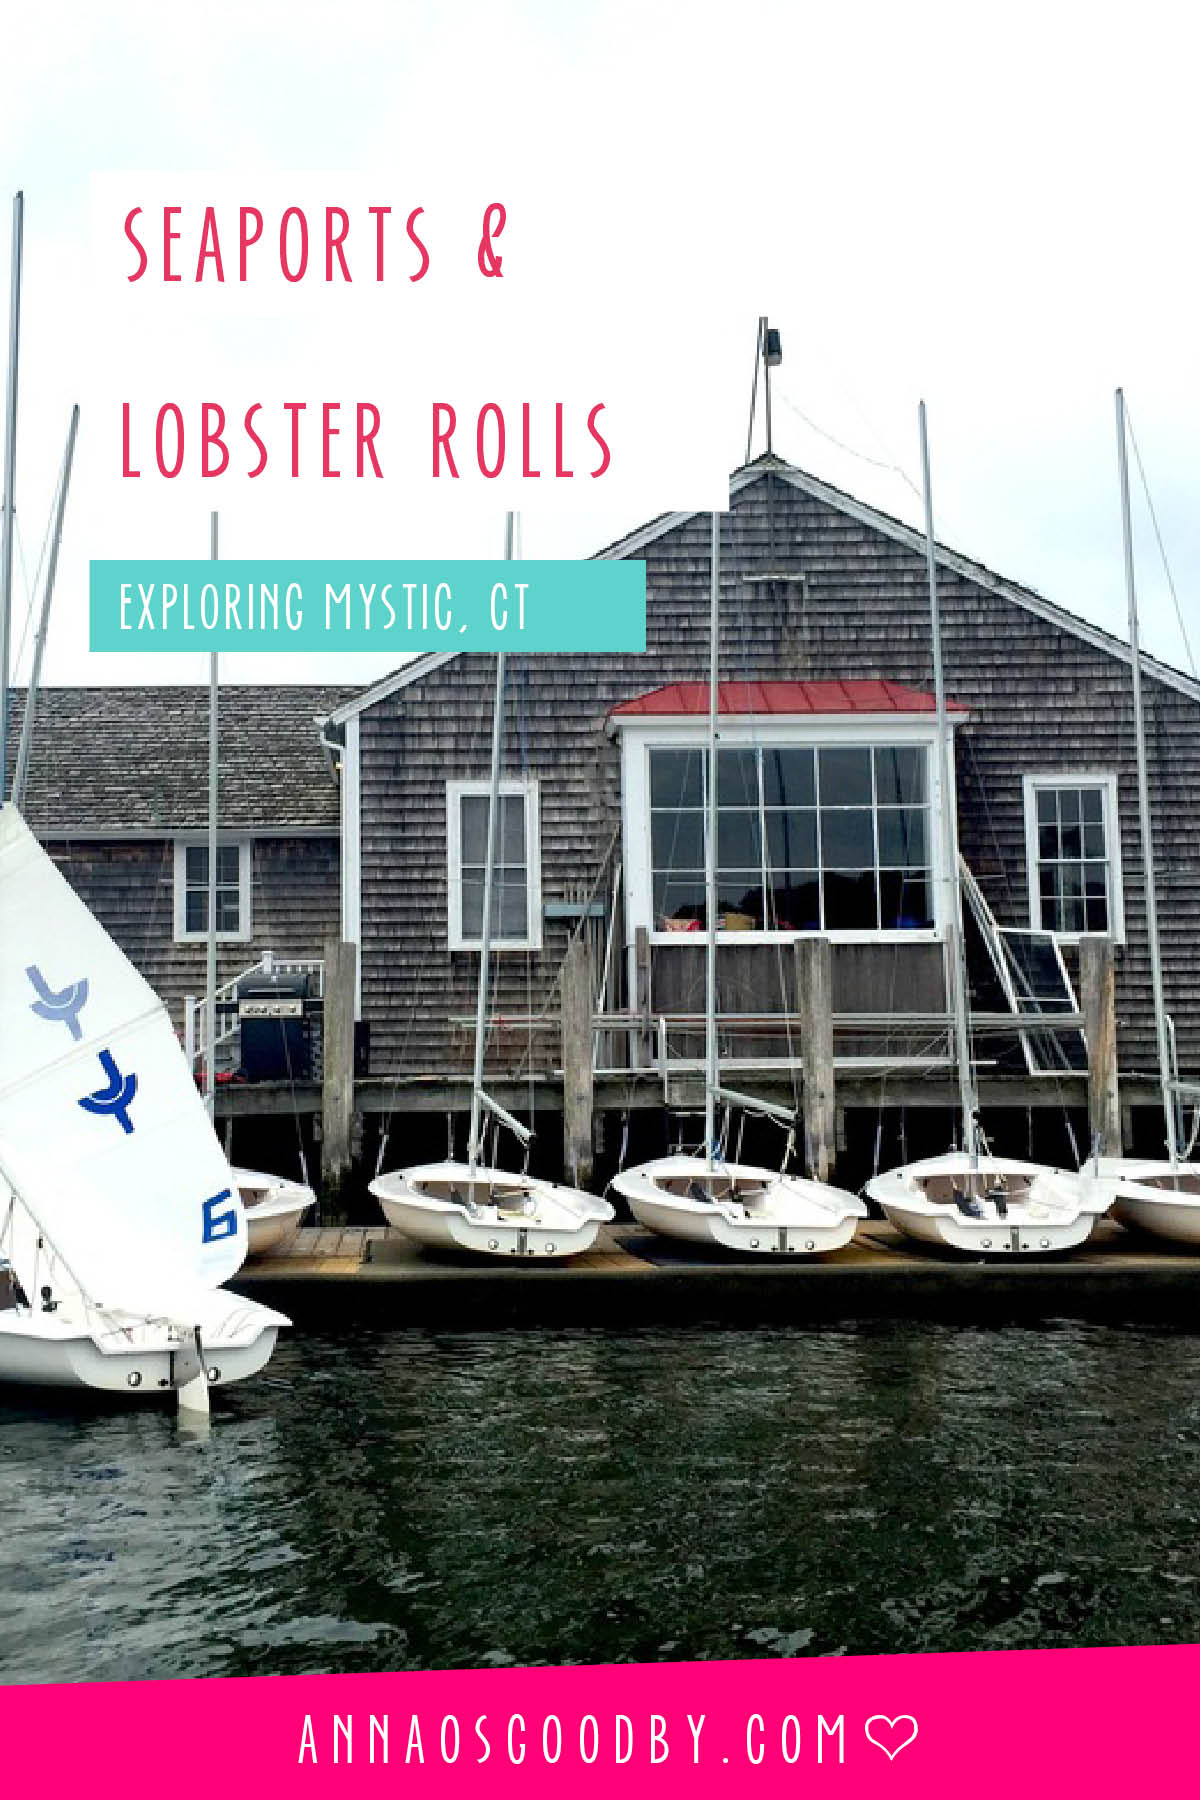 Anna Osgoodby Life + Design :: Seaports & Lobster Rolls Exploring Mystic, CT